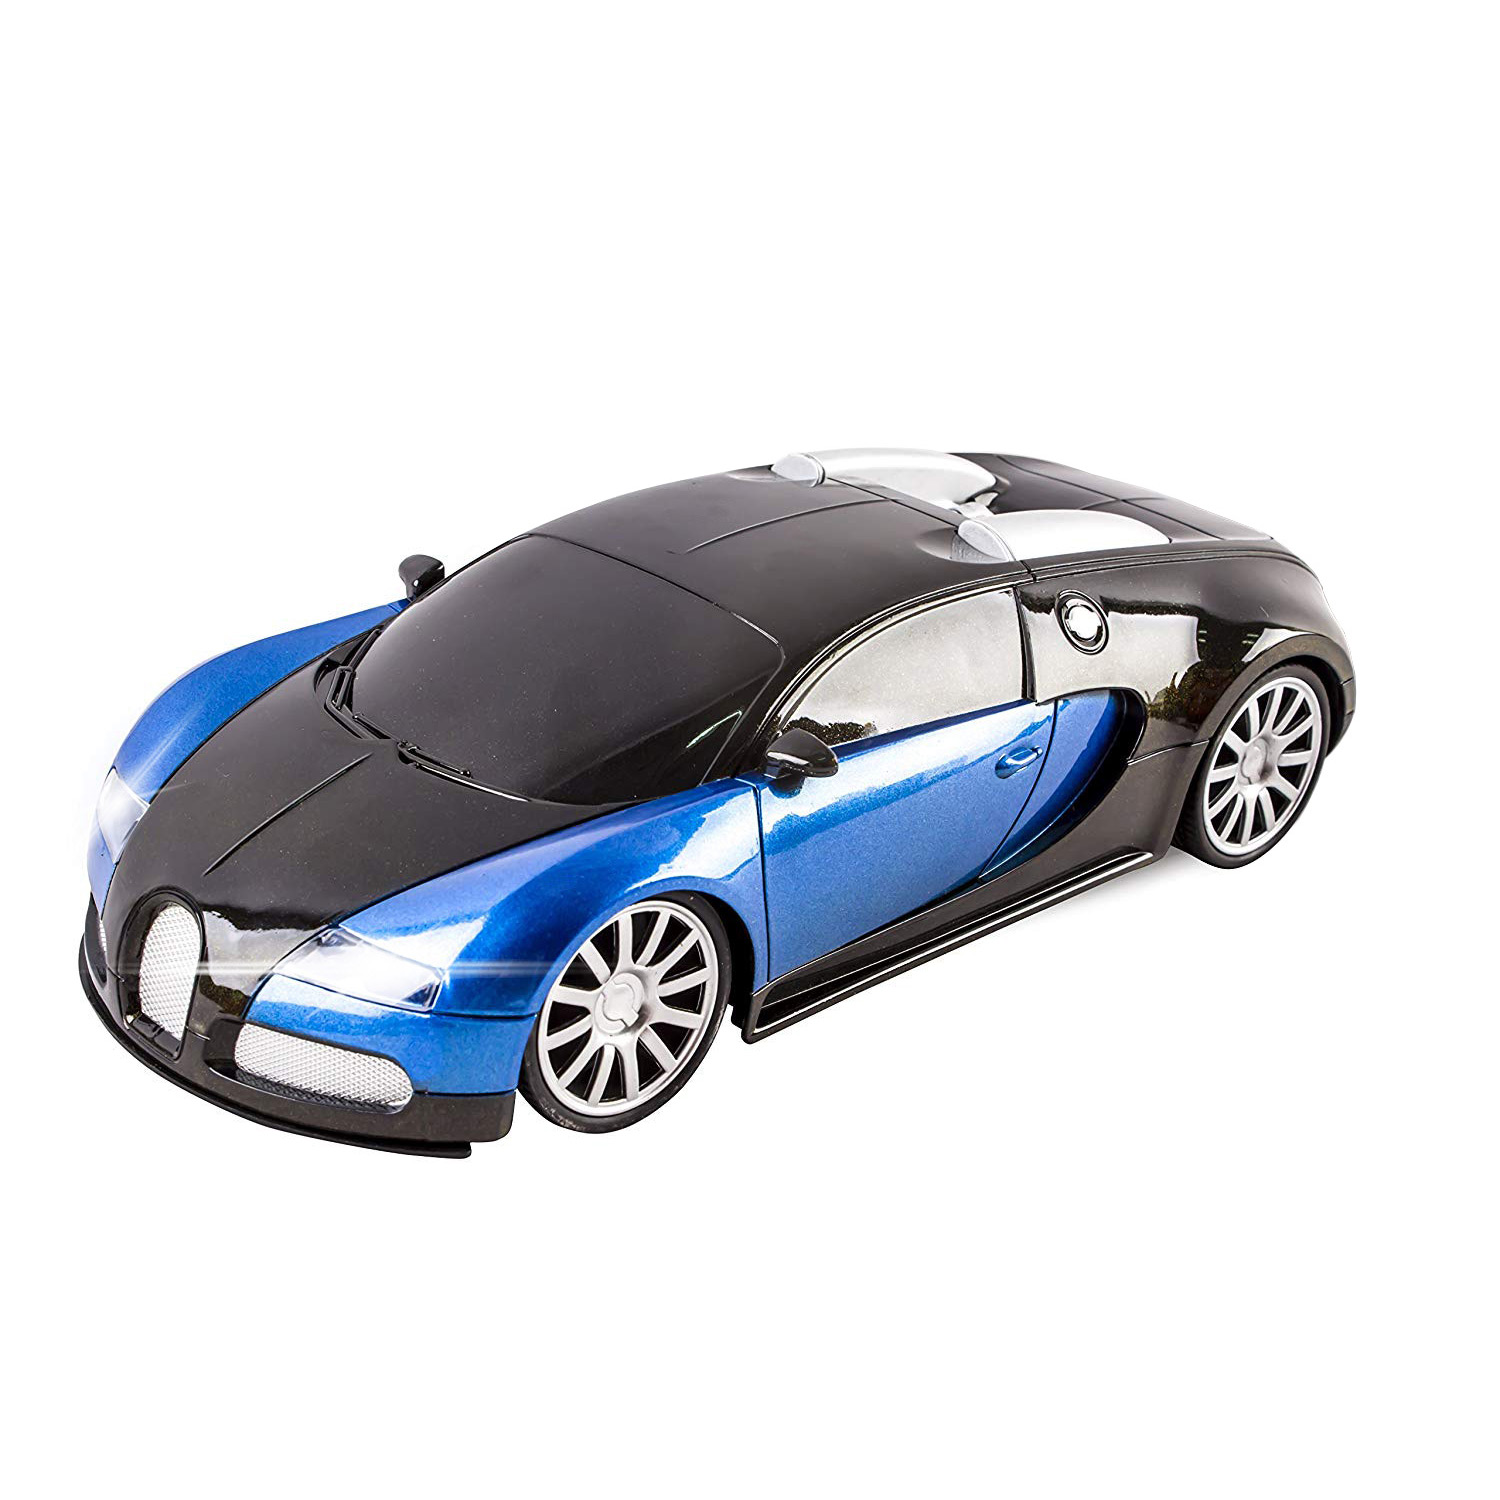 Super Exotic RC Car 116 Scale Remote Control Sports Cars For Kids with Working Headlights Easy To Operate Toy Race Vehicle Colors May Vary